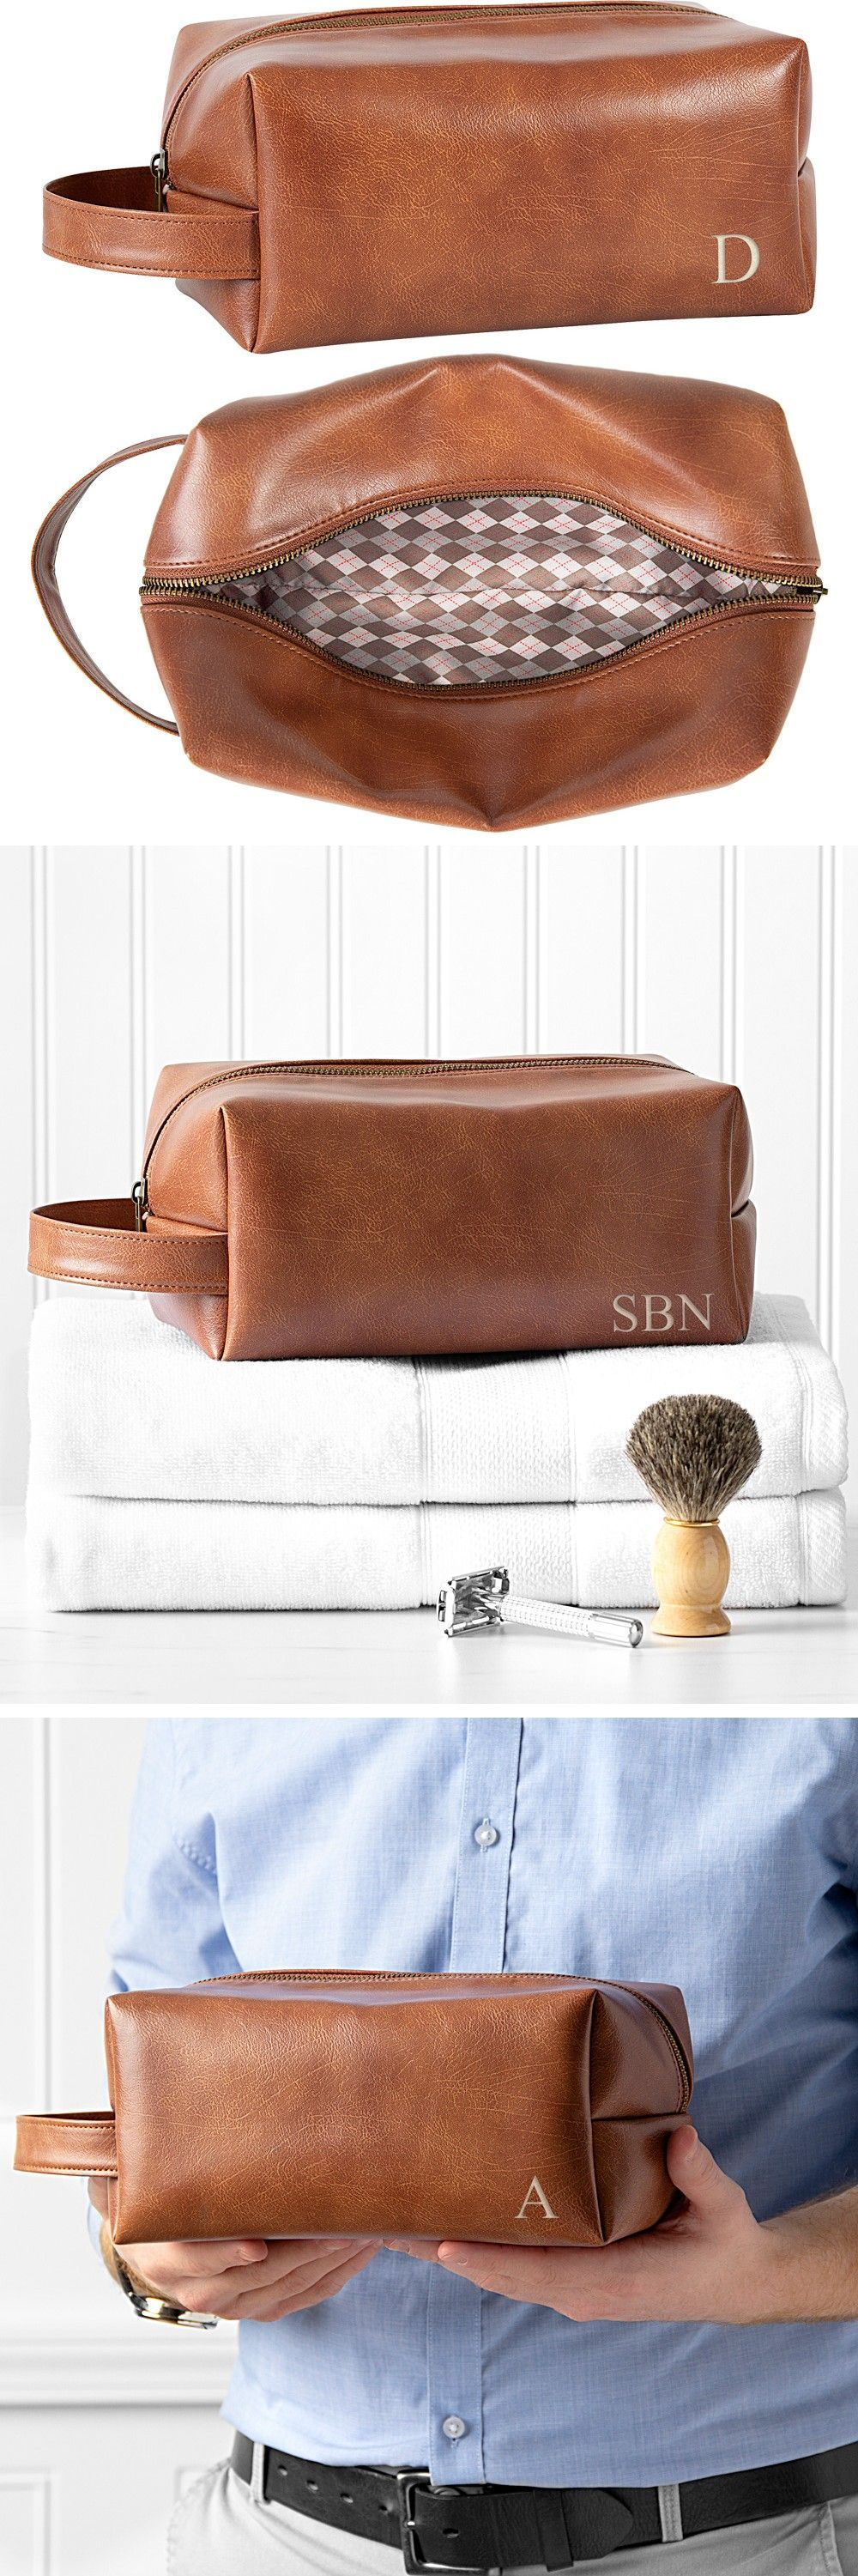 Personalized Brown Vegan Leather Men's Travel Toiletry Bag